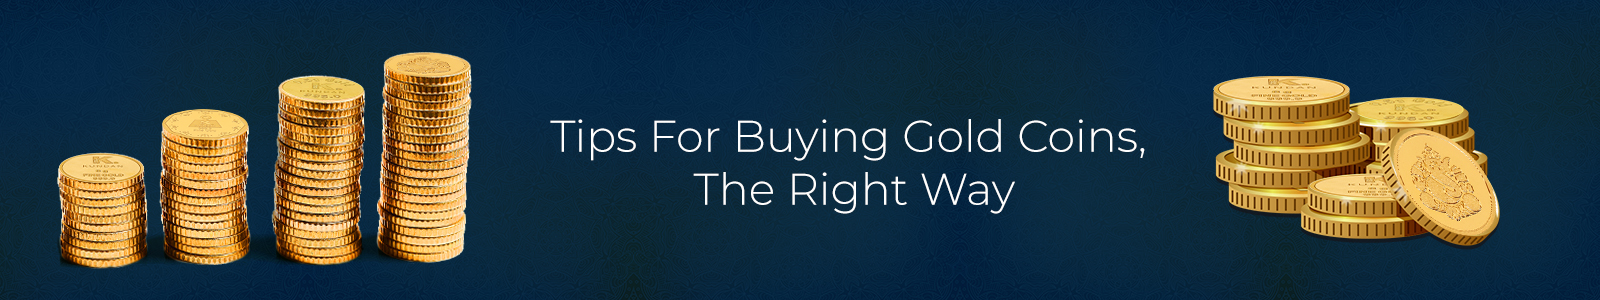 Tips For Buying Gold Coins, The Right Way